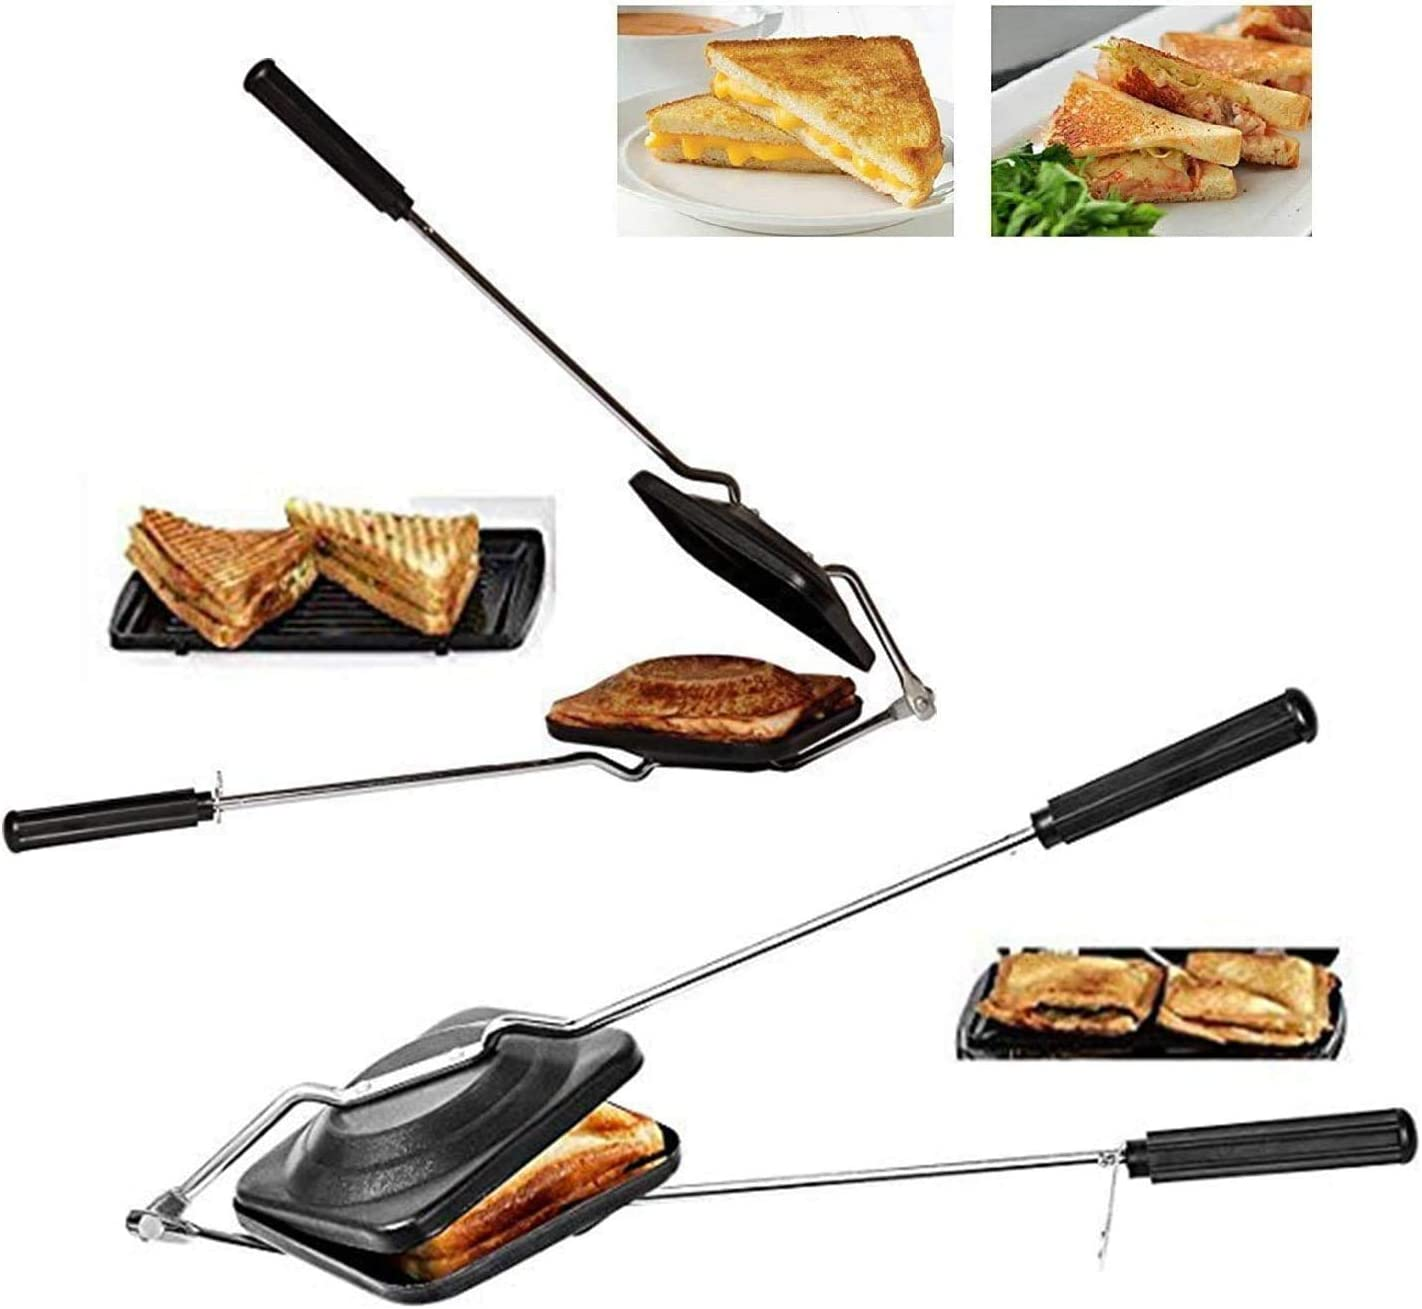 Sandwich Maker Sandwich Toaster Nonstick Sandwich Maker Sandwich maker pan Gas Sandwich Toaster Gas Sandwich Toaster Stove top Toasted Sandwich Snack Maker Nonstick Double Side Pressure Pan with Handles